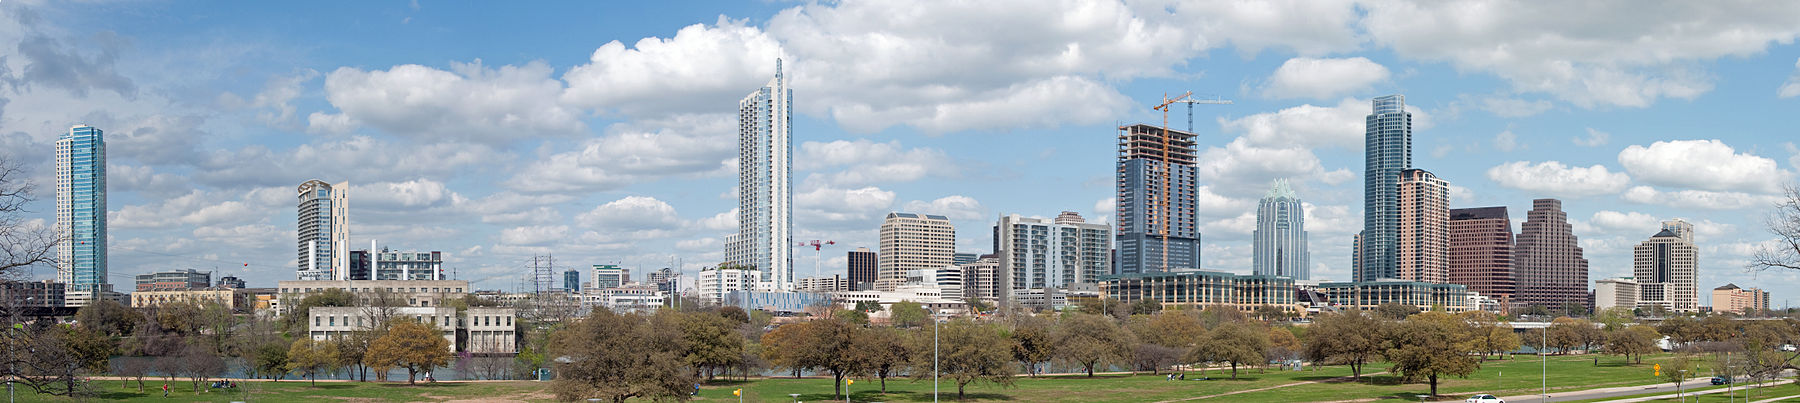 Frost Bank Tower also Shopping Centers Districts besides Guide East Sixth Street Austin Texas as well Sxsw additionally Sixth Street Vs Rainey Street The Pros And Cons. on sixth street austin texas